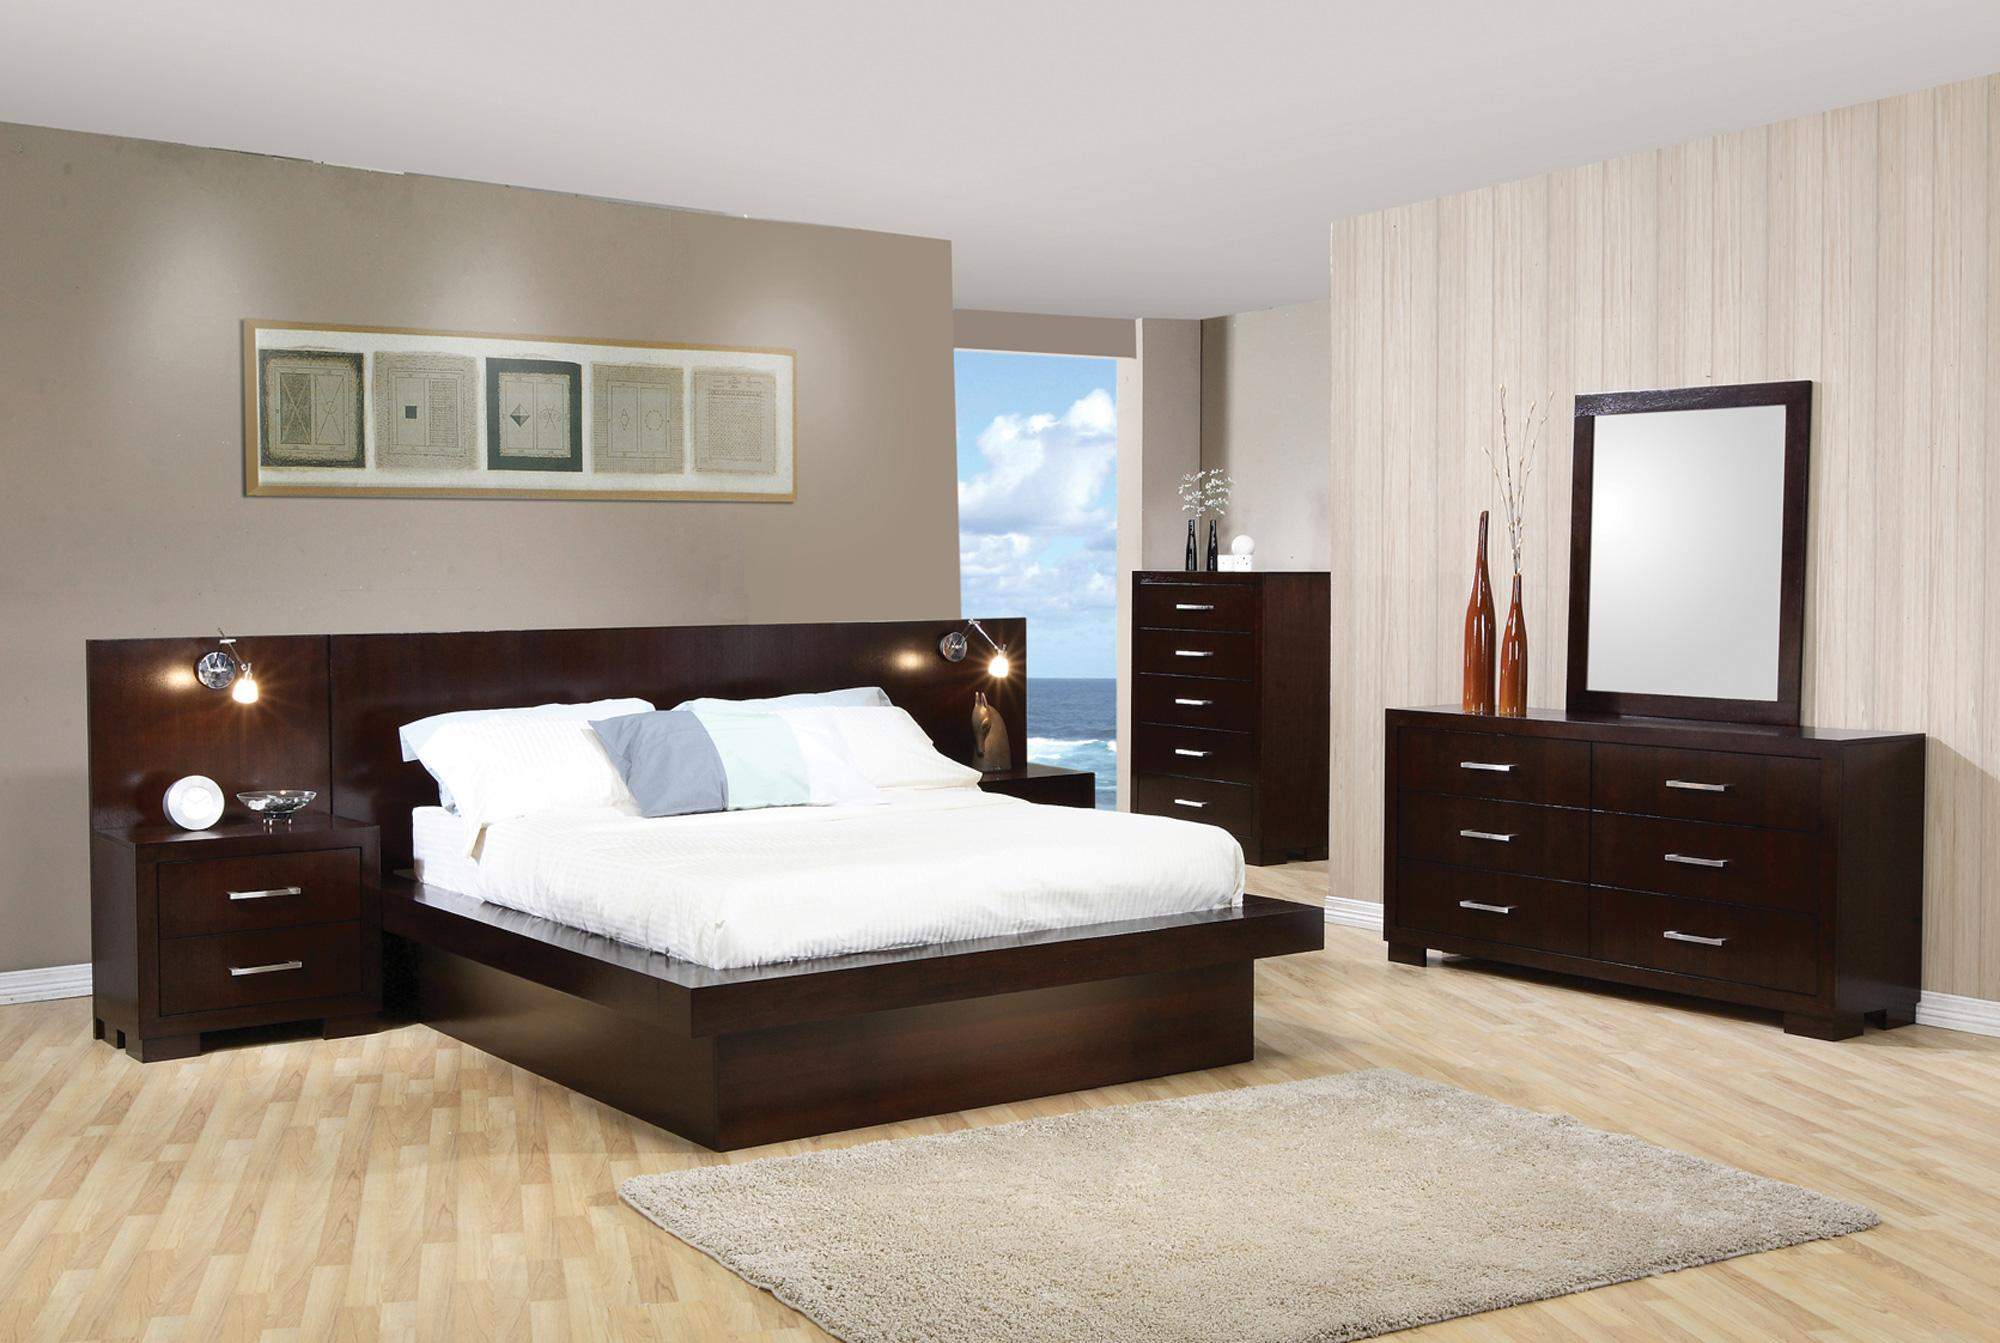 Coaster Jessica King Bedroom Group A1 Furniture Mattress Bedroom Groups